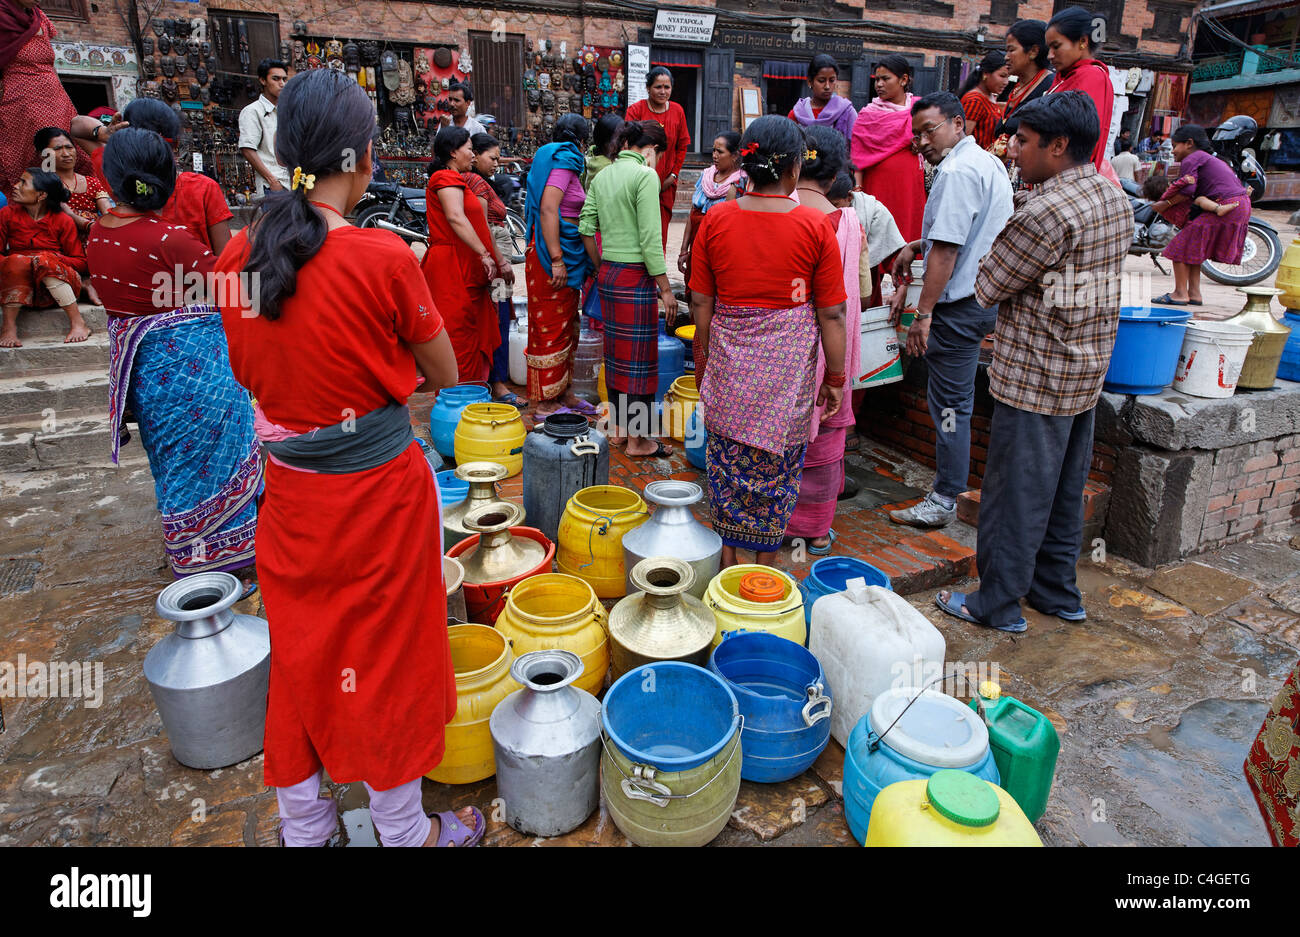 Nepal - Kathmandu Valley - Bhaktapur - women queuing for water - Stock Image